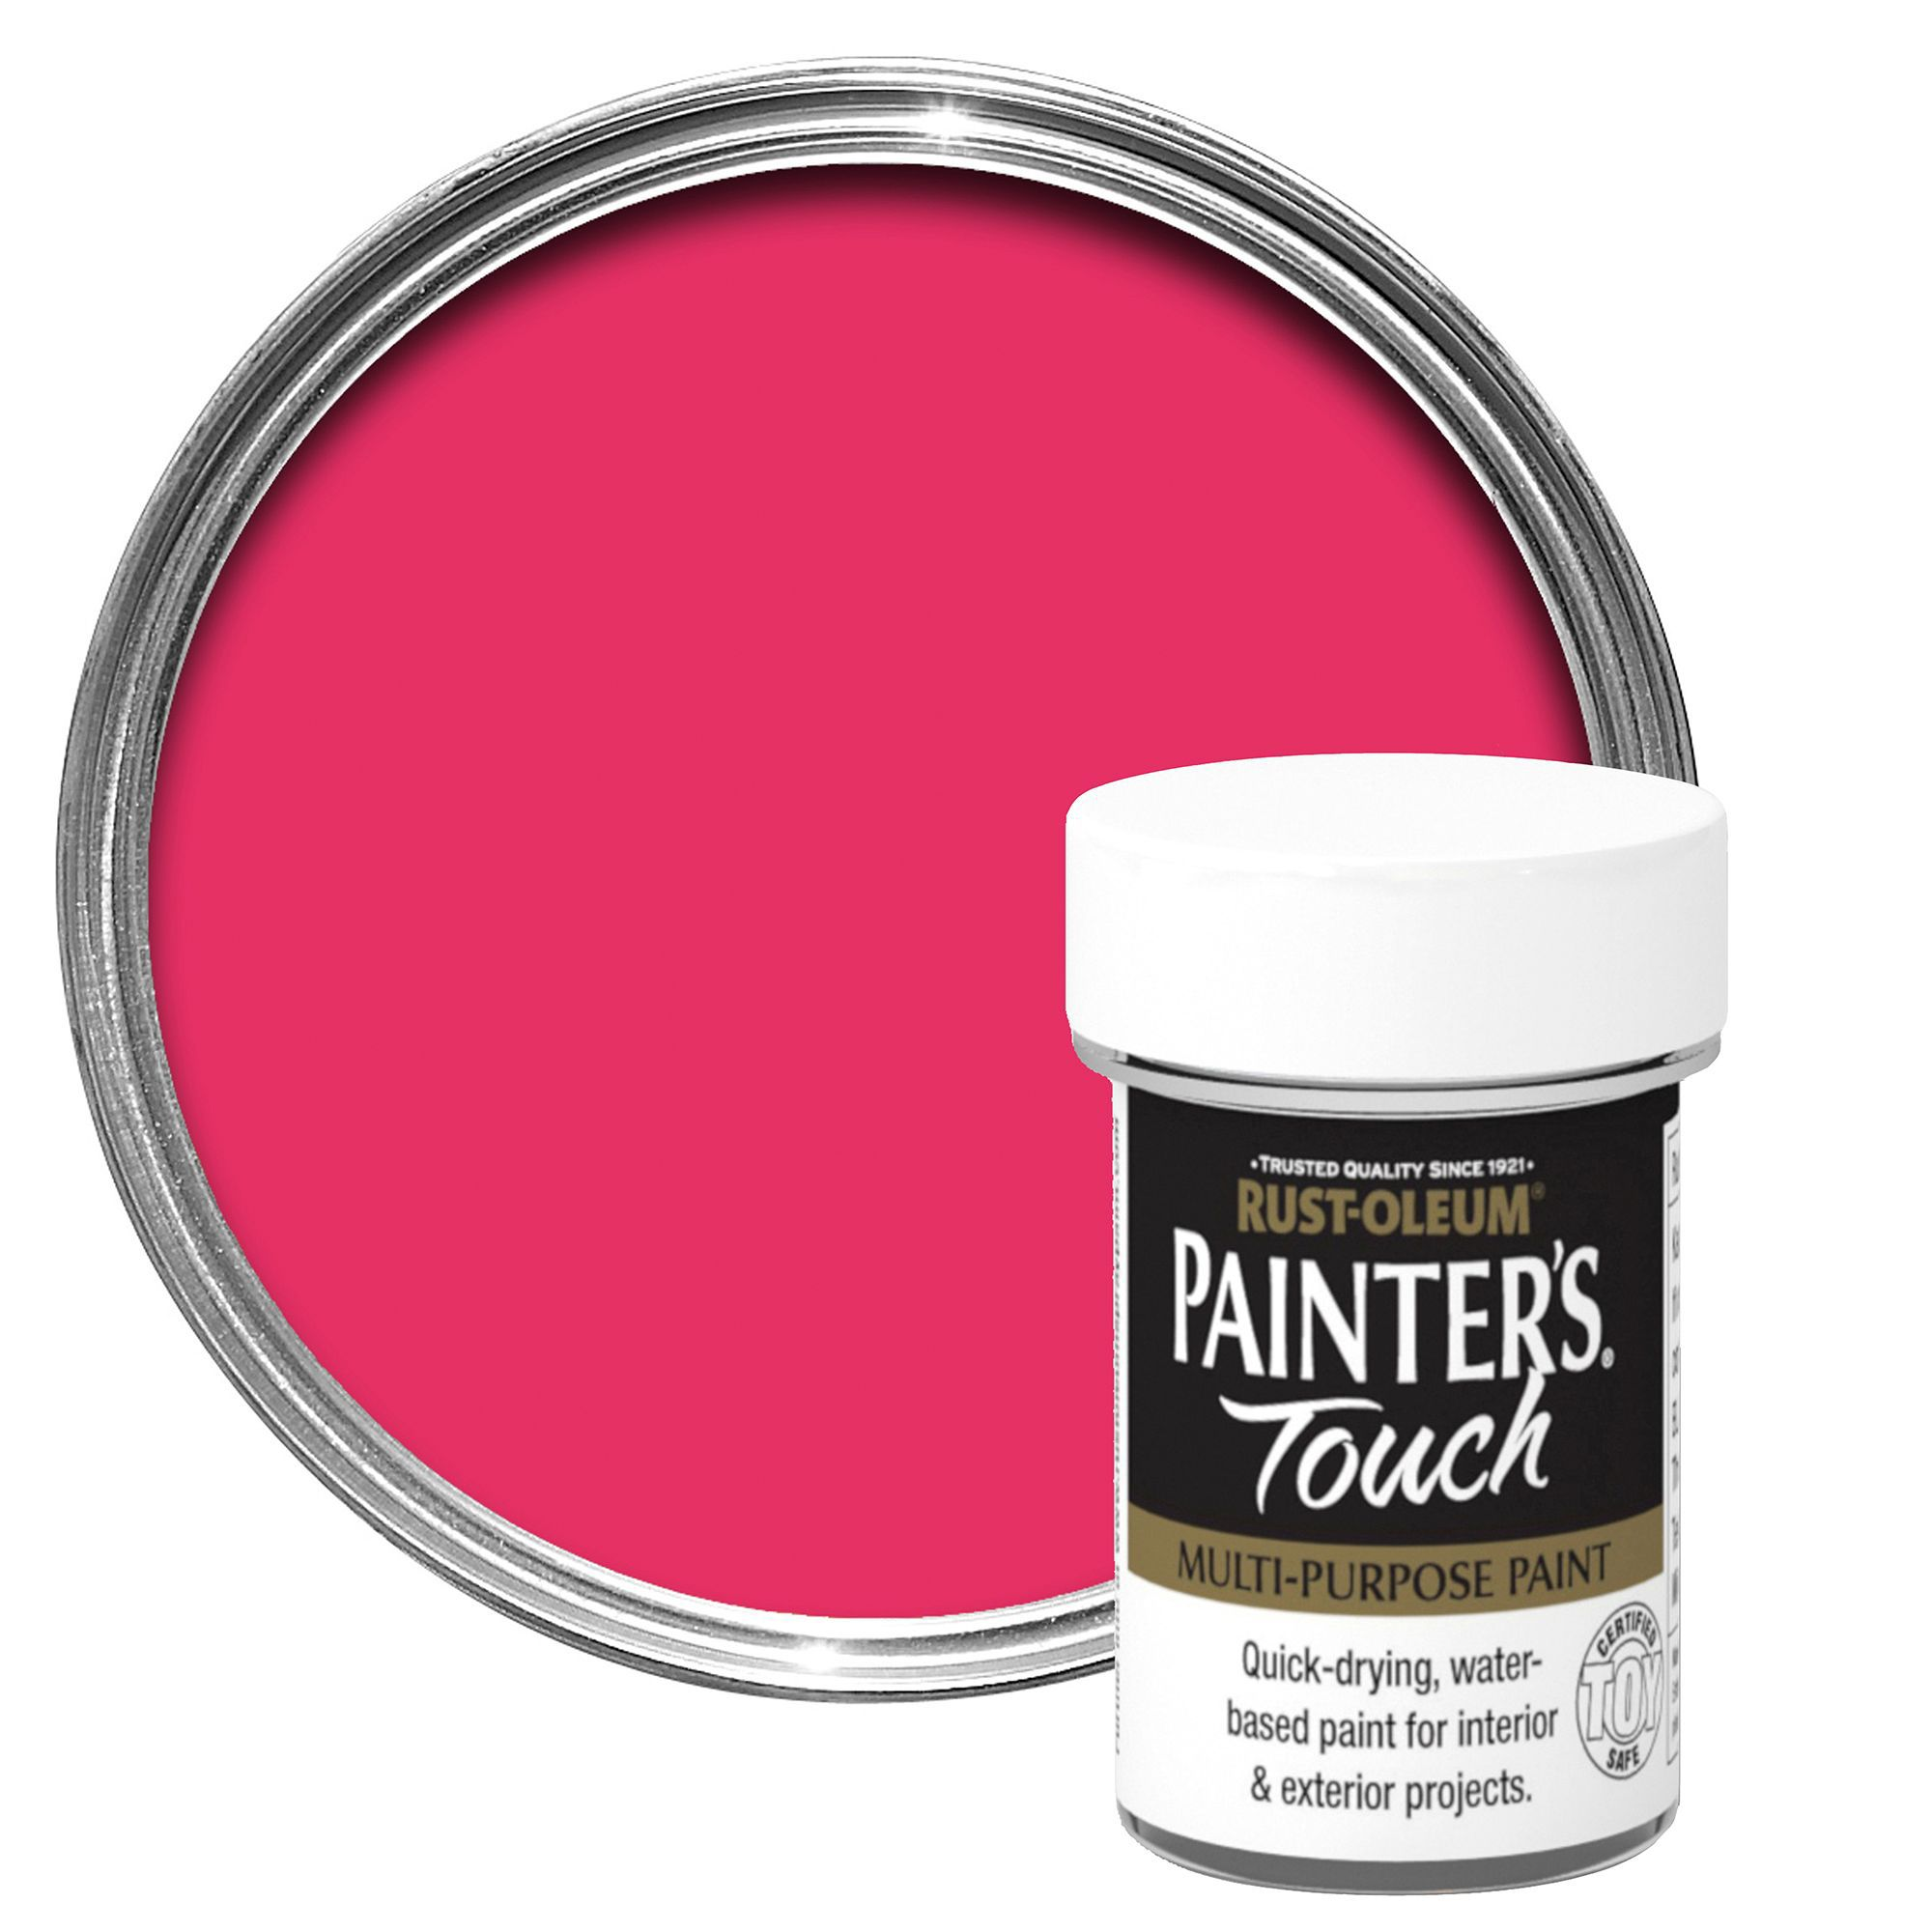 Rust-Oleum Painter's Touch Interior & Exterior Baby Pink Gloss Multipurpose Paint 20ml